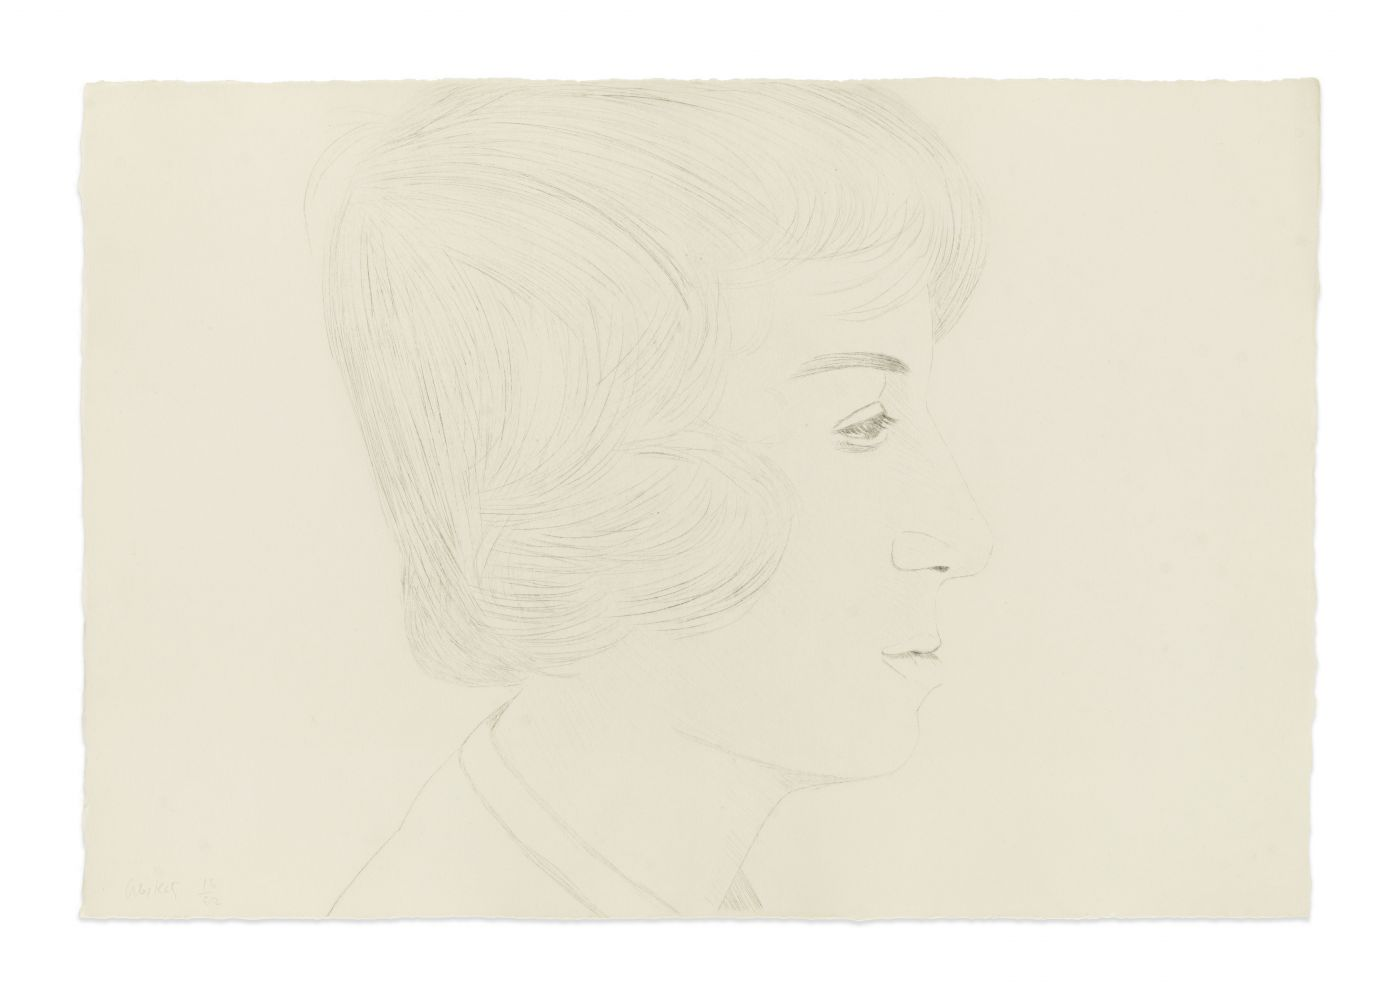 Drypoint drawing by Alex Katz featuring the profile view of a man